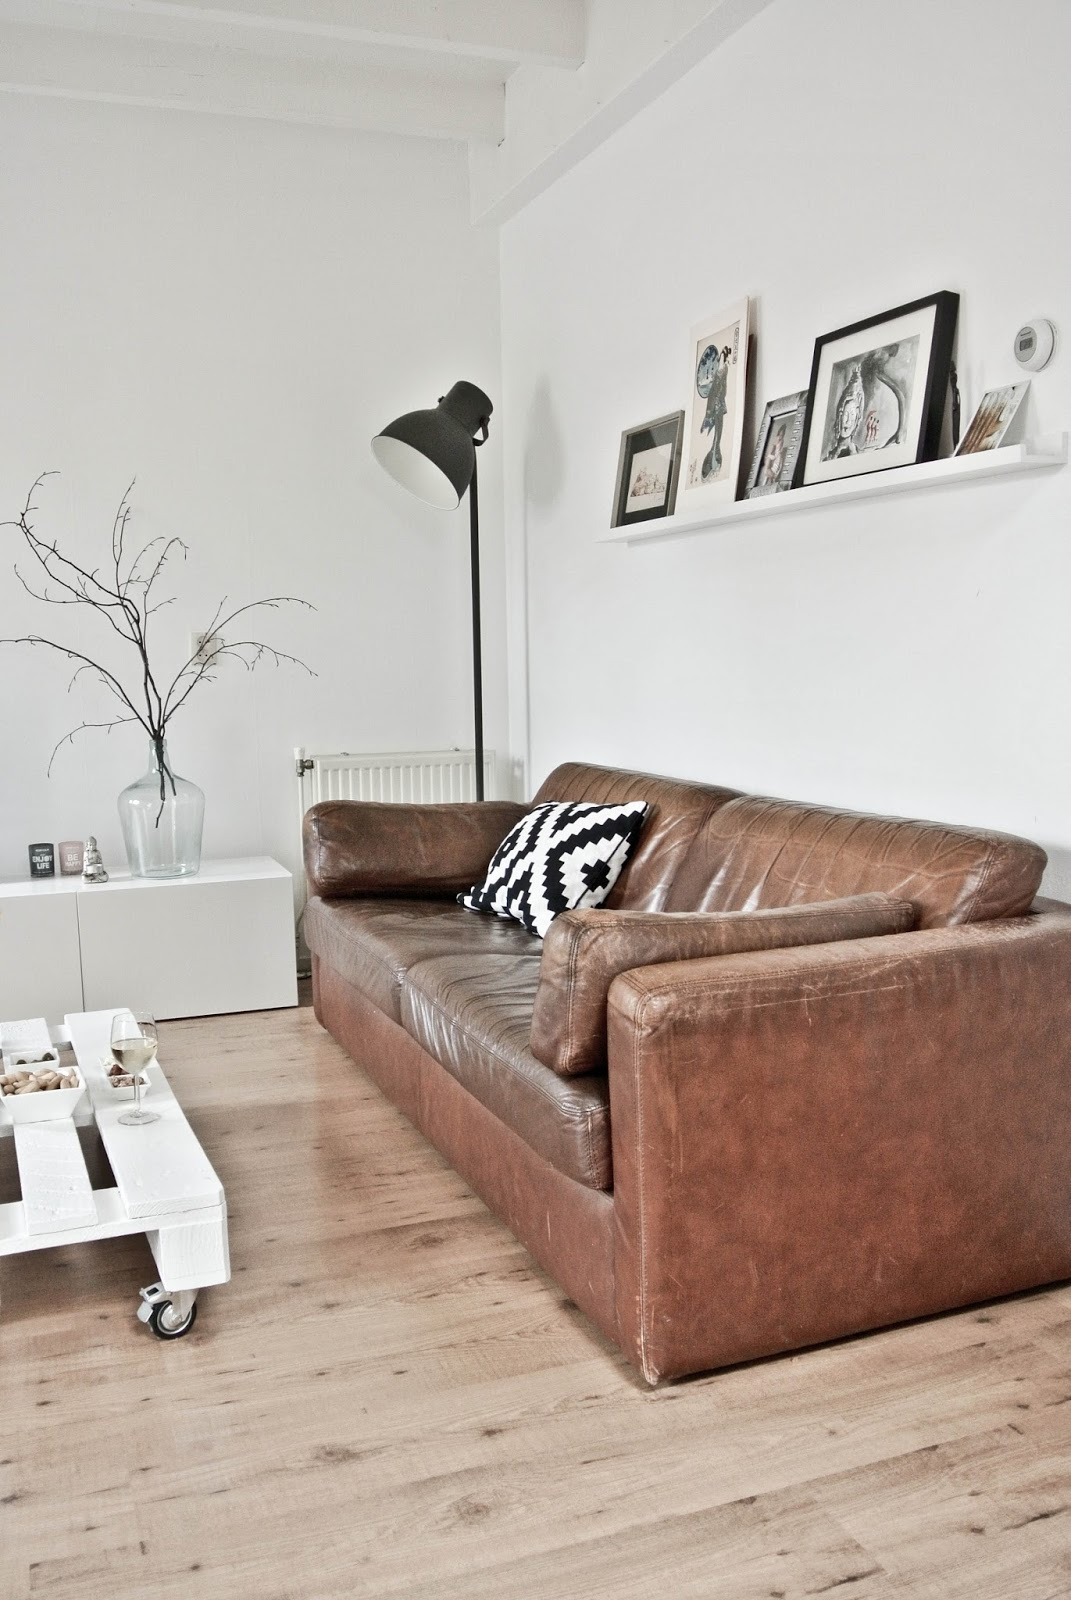 Distressed leather sofa in minimal living space